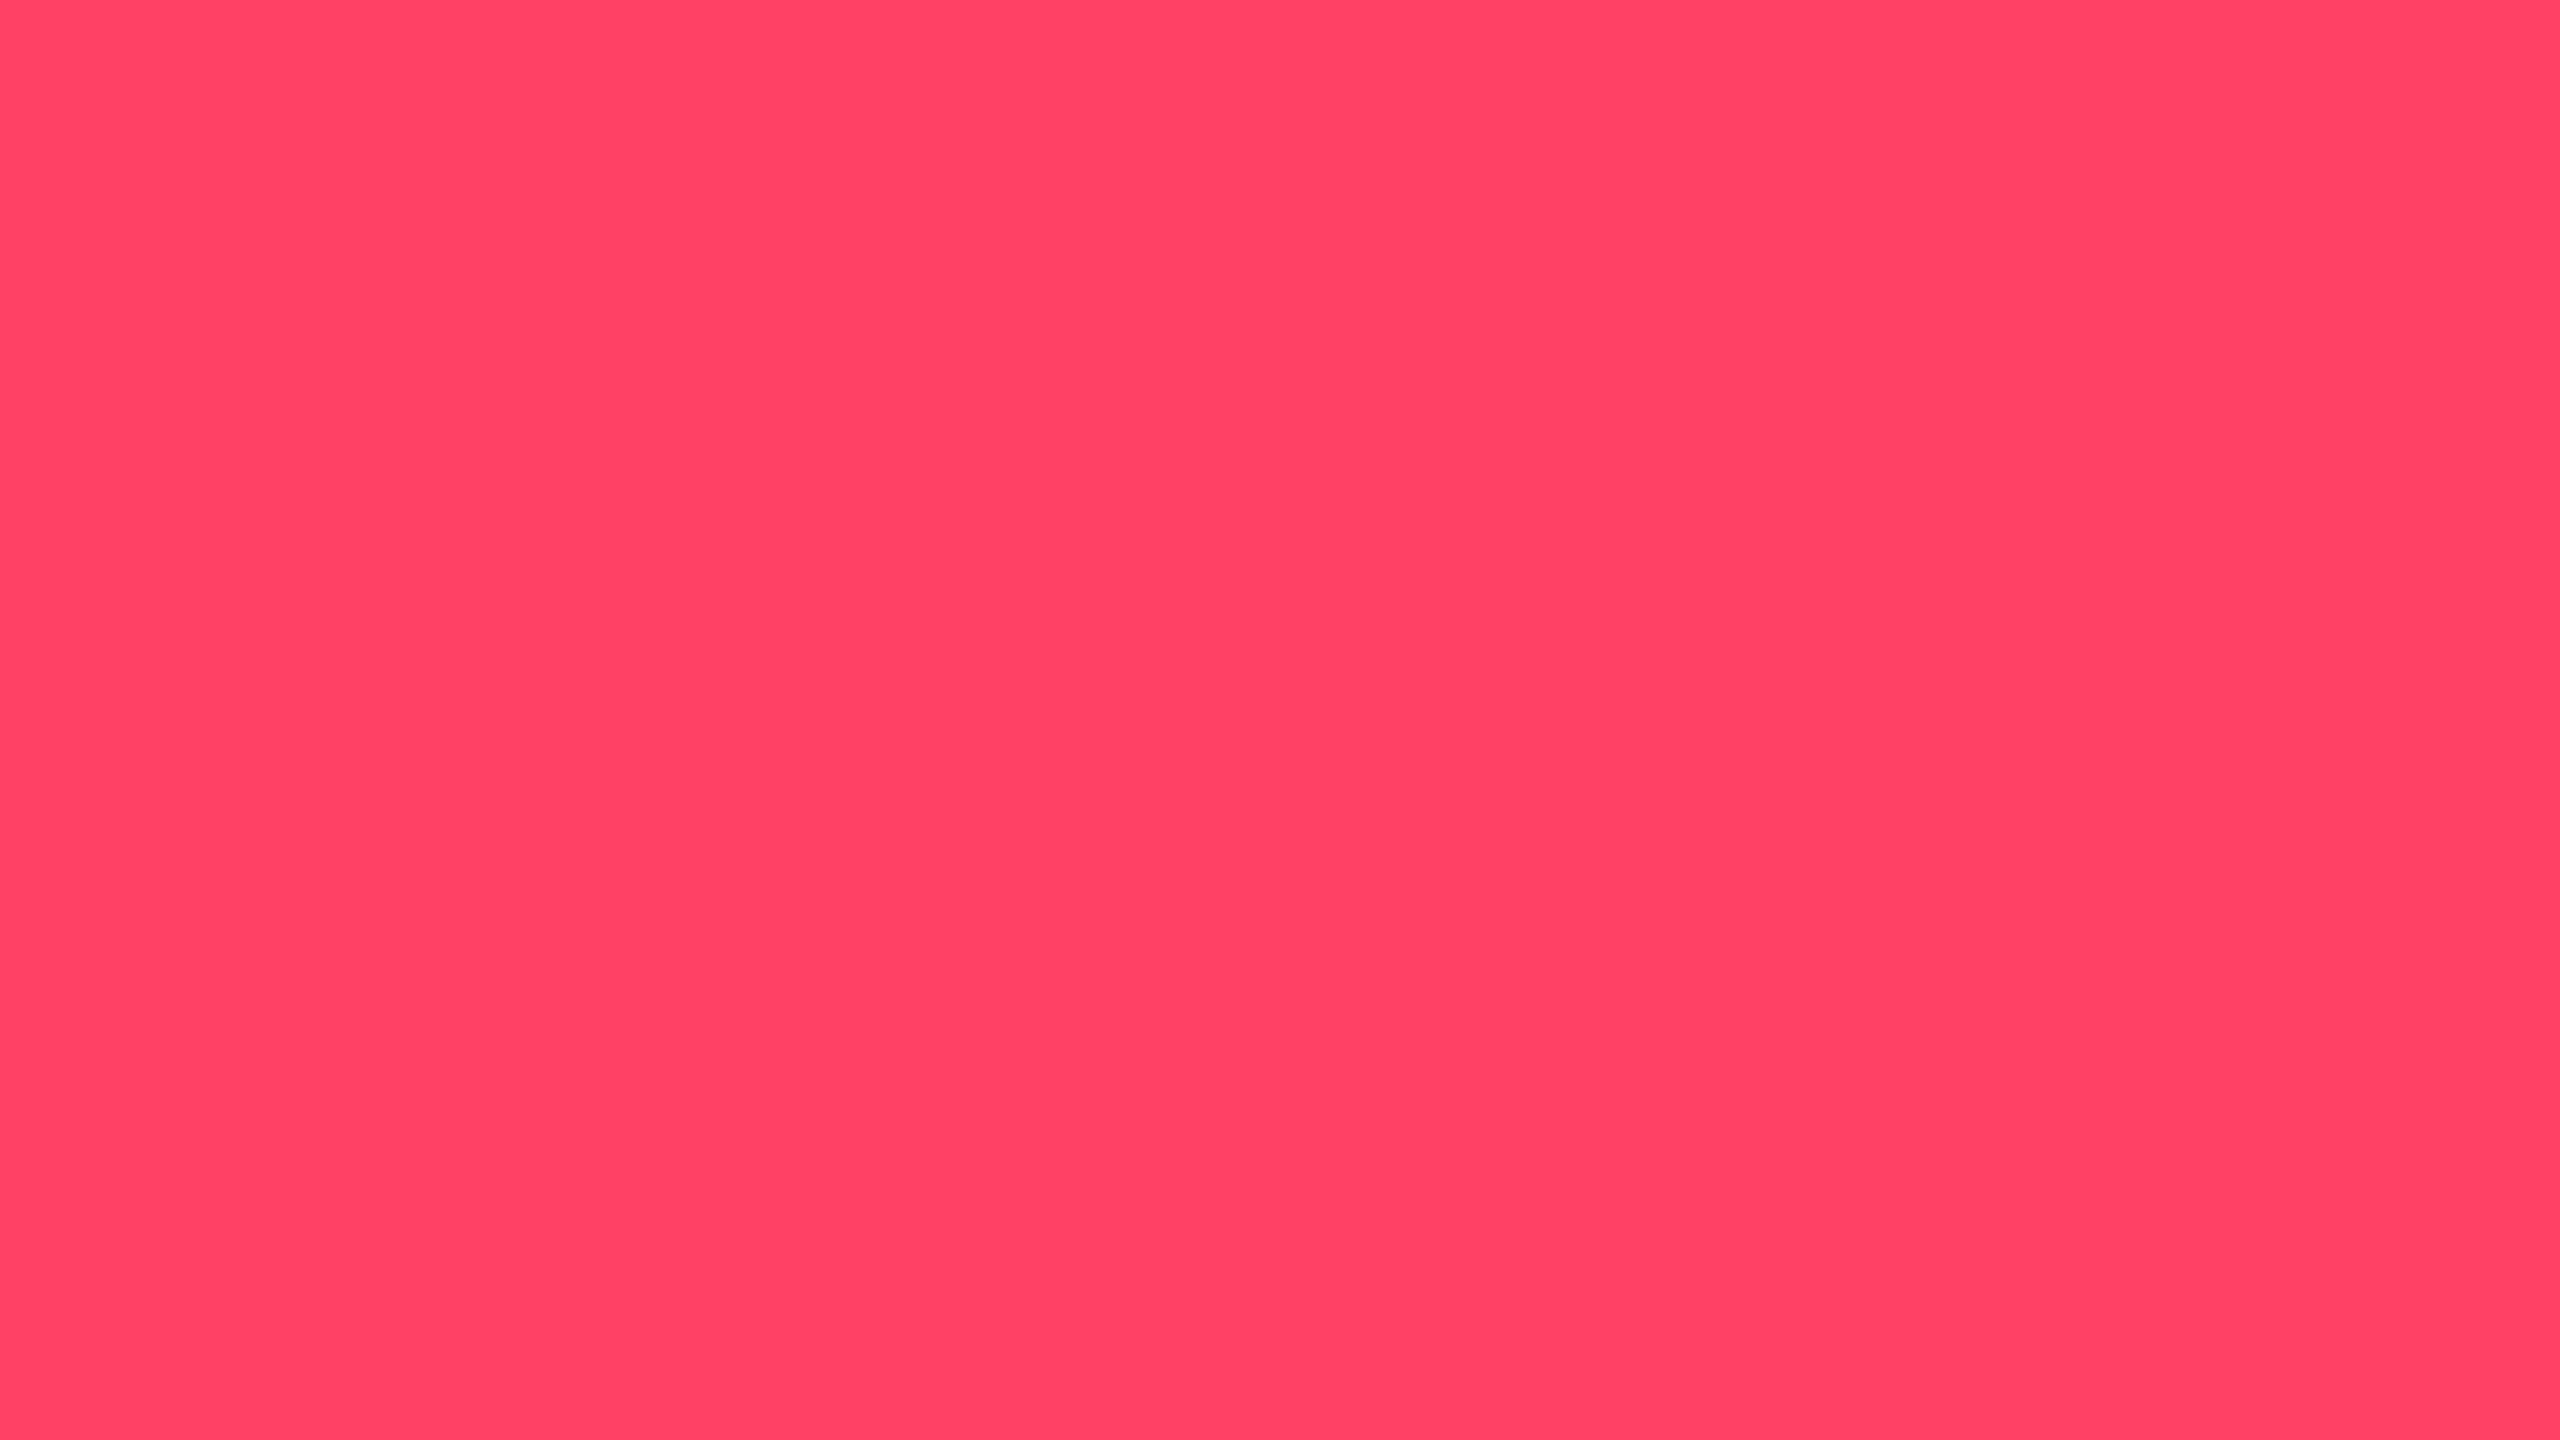 2560x1440 resolution Neon Fuchsia solid color background view 2560x1440